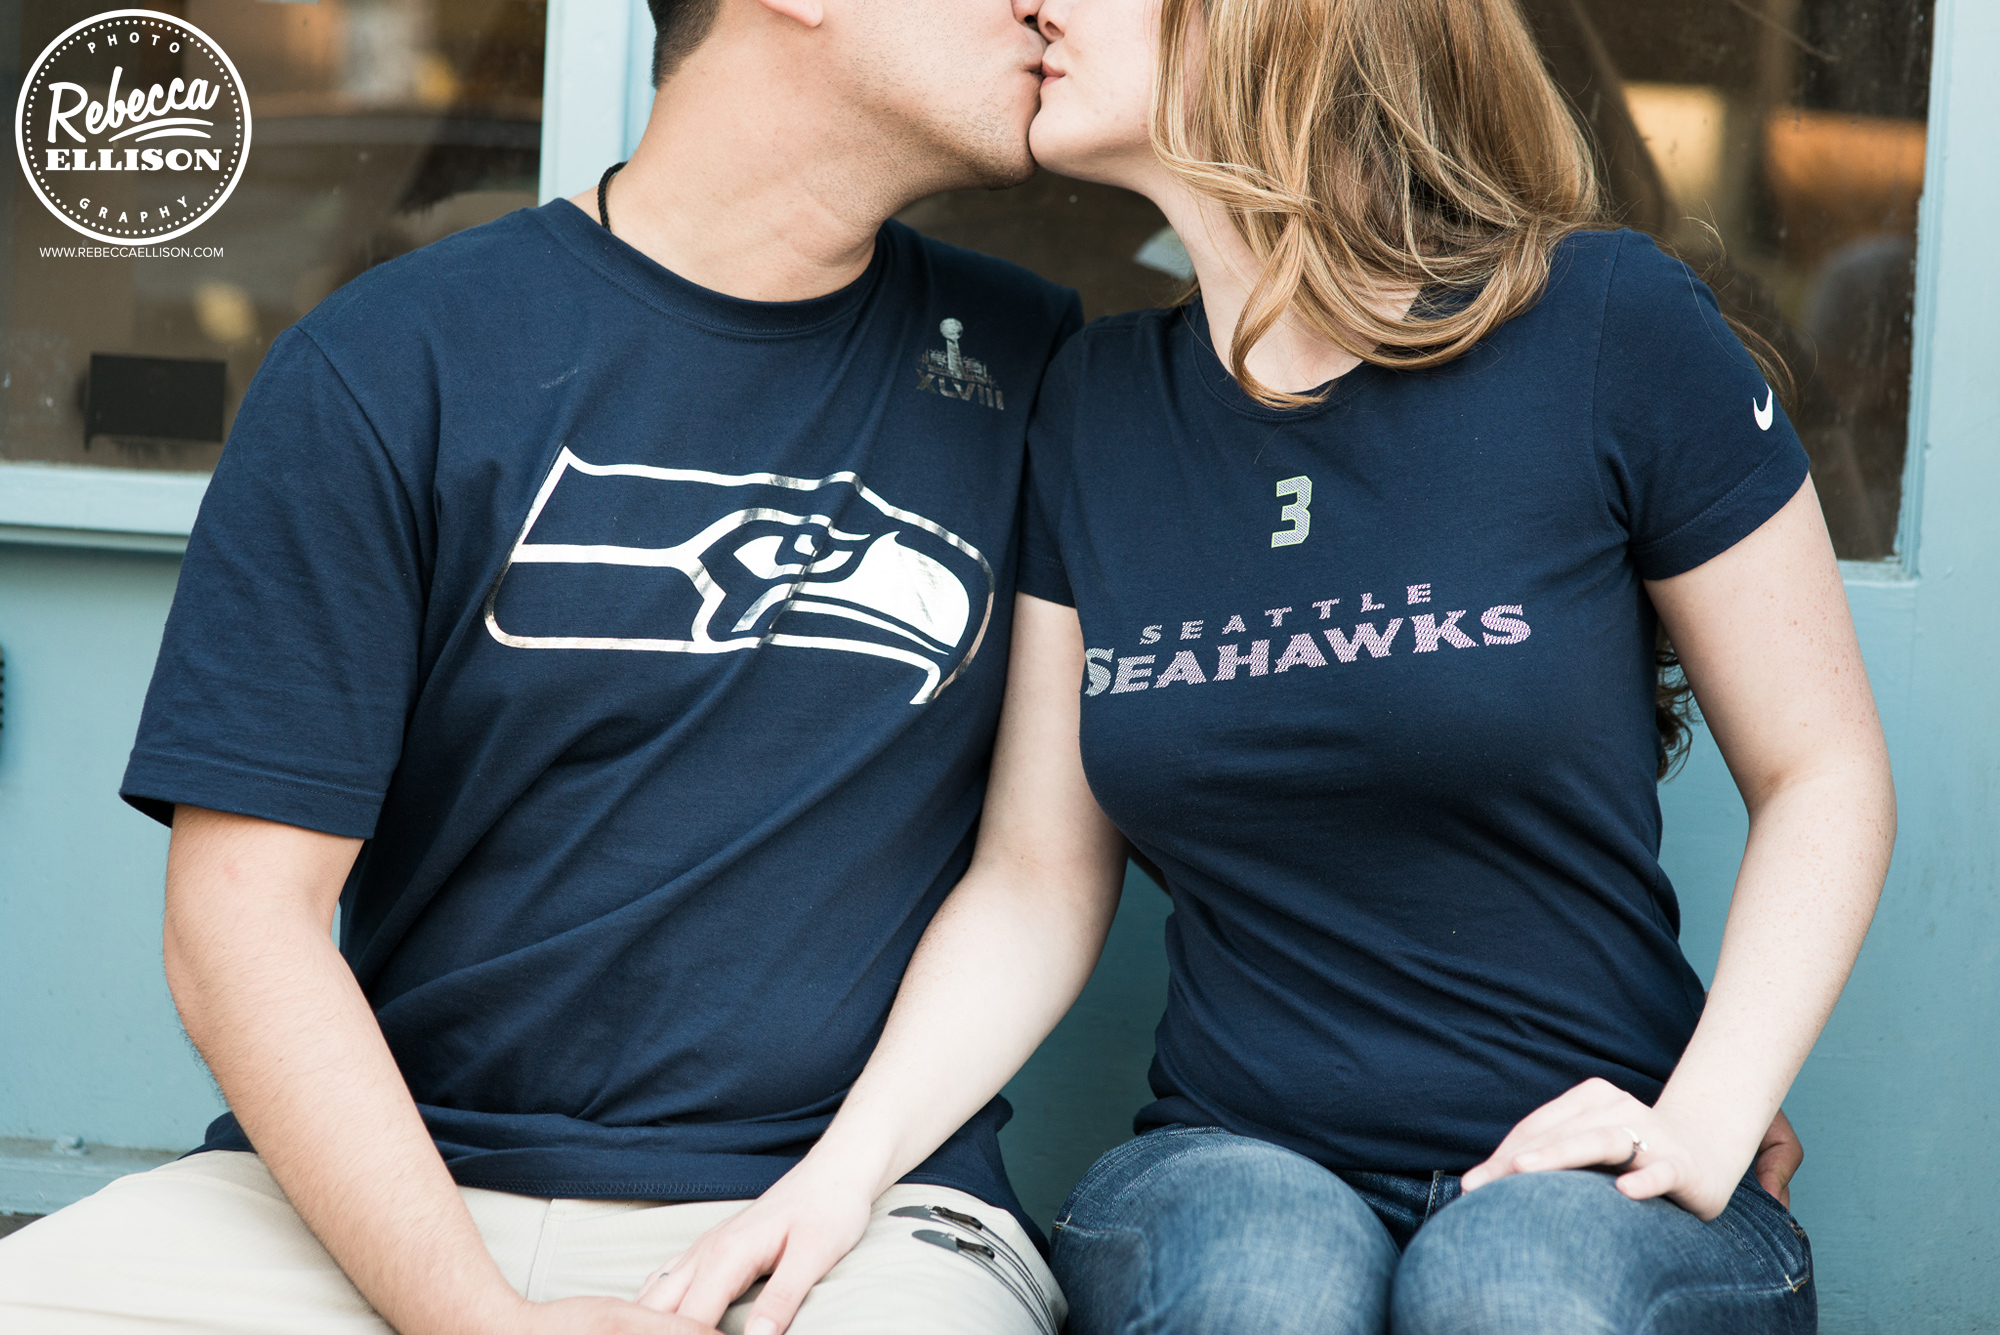 A couple wearing Seahawks shirts during their engagement portraits kisses photographed by Rebecca Ellison Photography